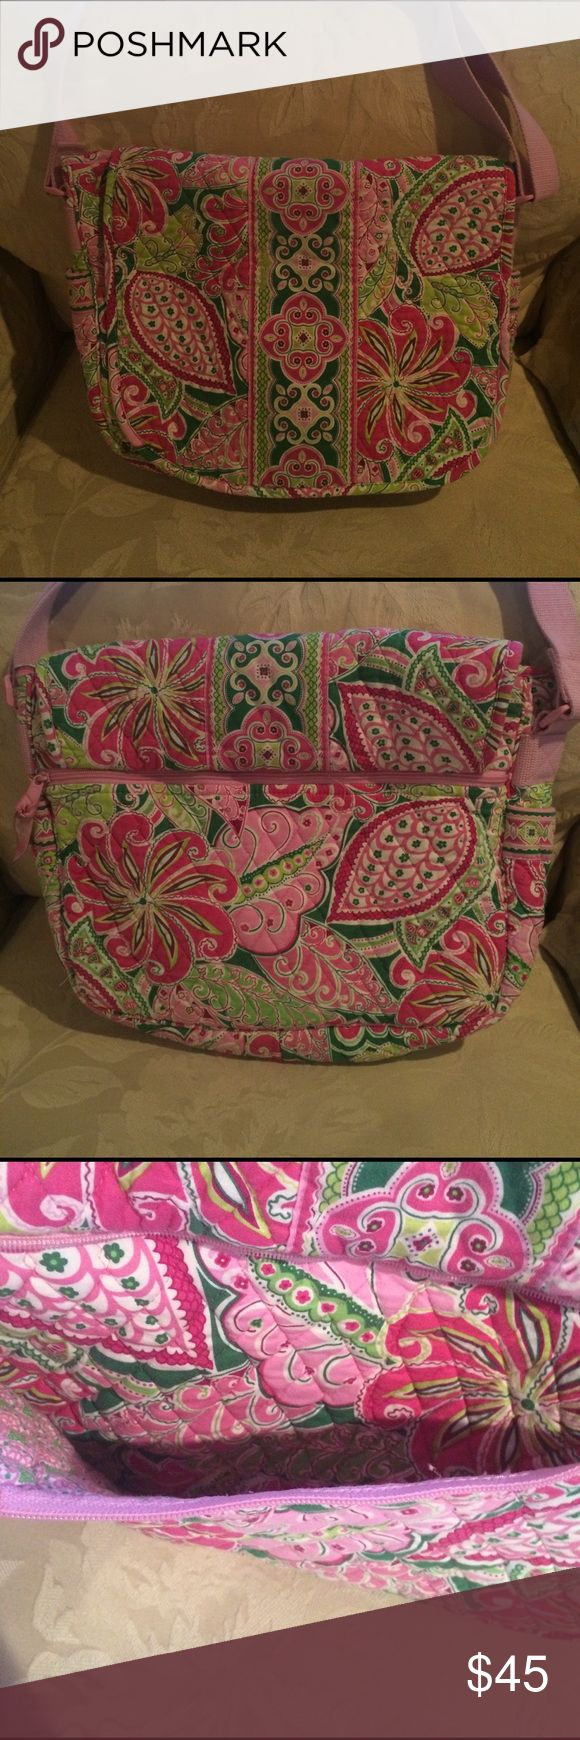 Vera Bradley Pinwheel Pink Laptop Messenger bag Virtually zero wear. Perfect for students and moms. Many compartments. Pinwheel pink fabric quilted bag. Could be a travel bag or diaper bag. Preppy pink and green. Vera Bradley Bags Laptop Bags